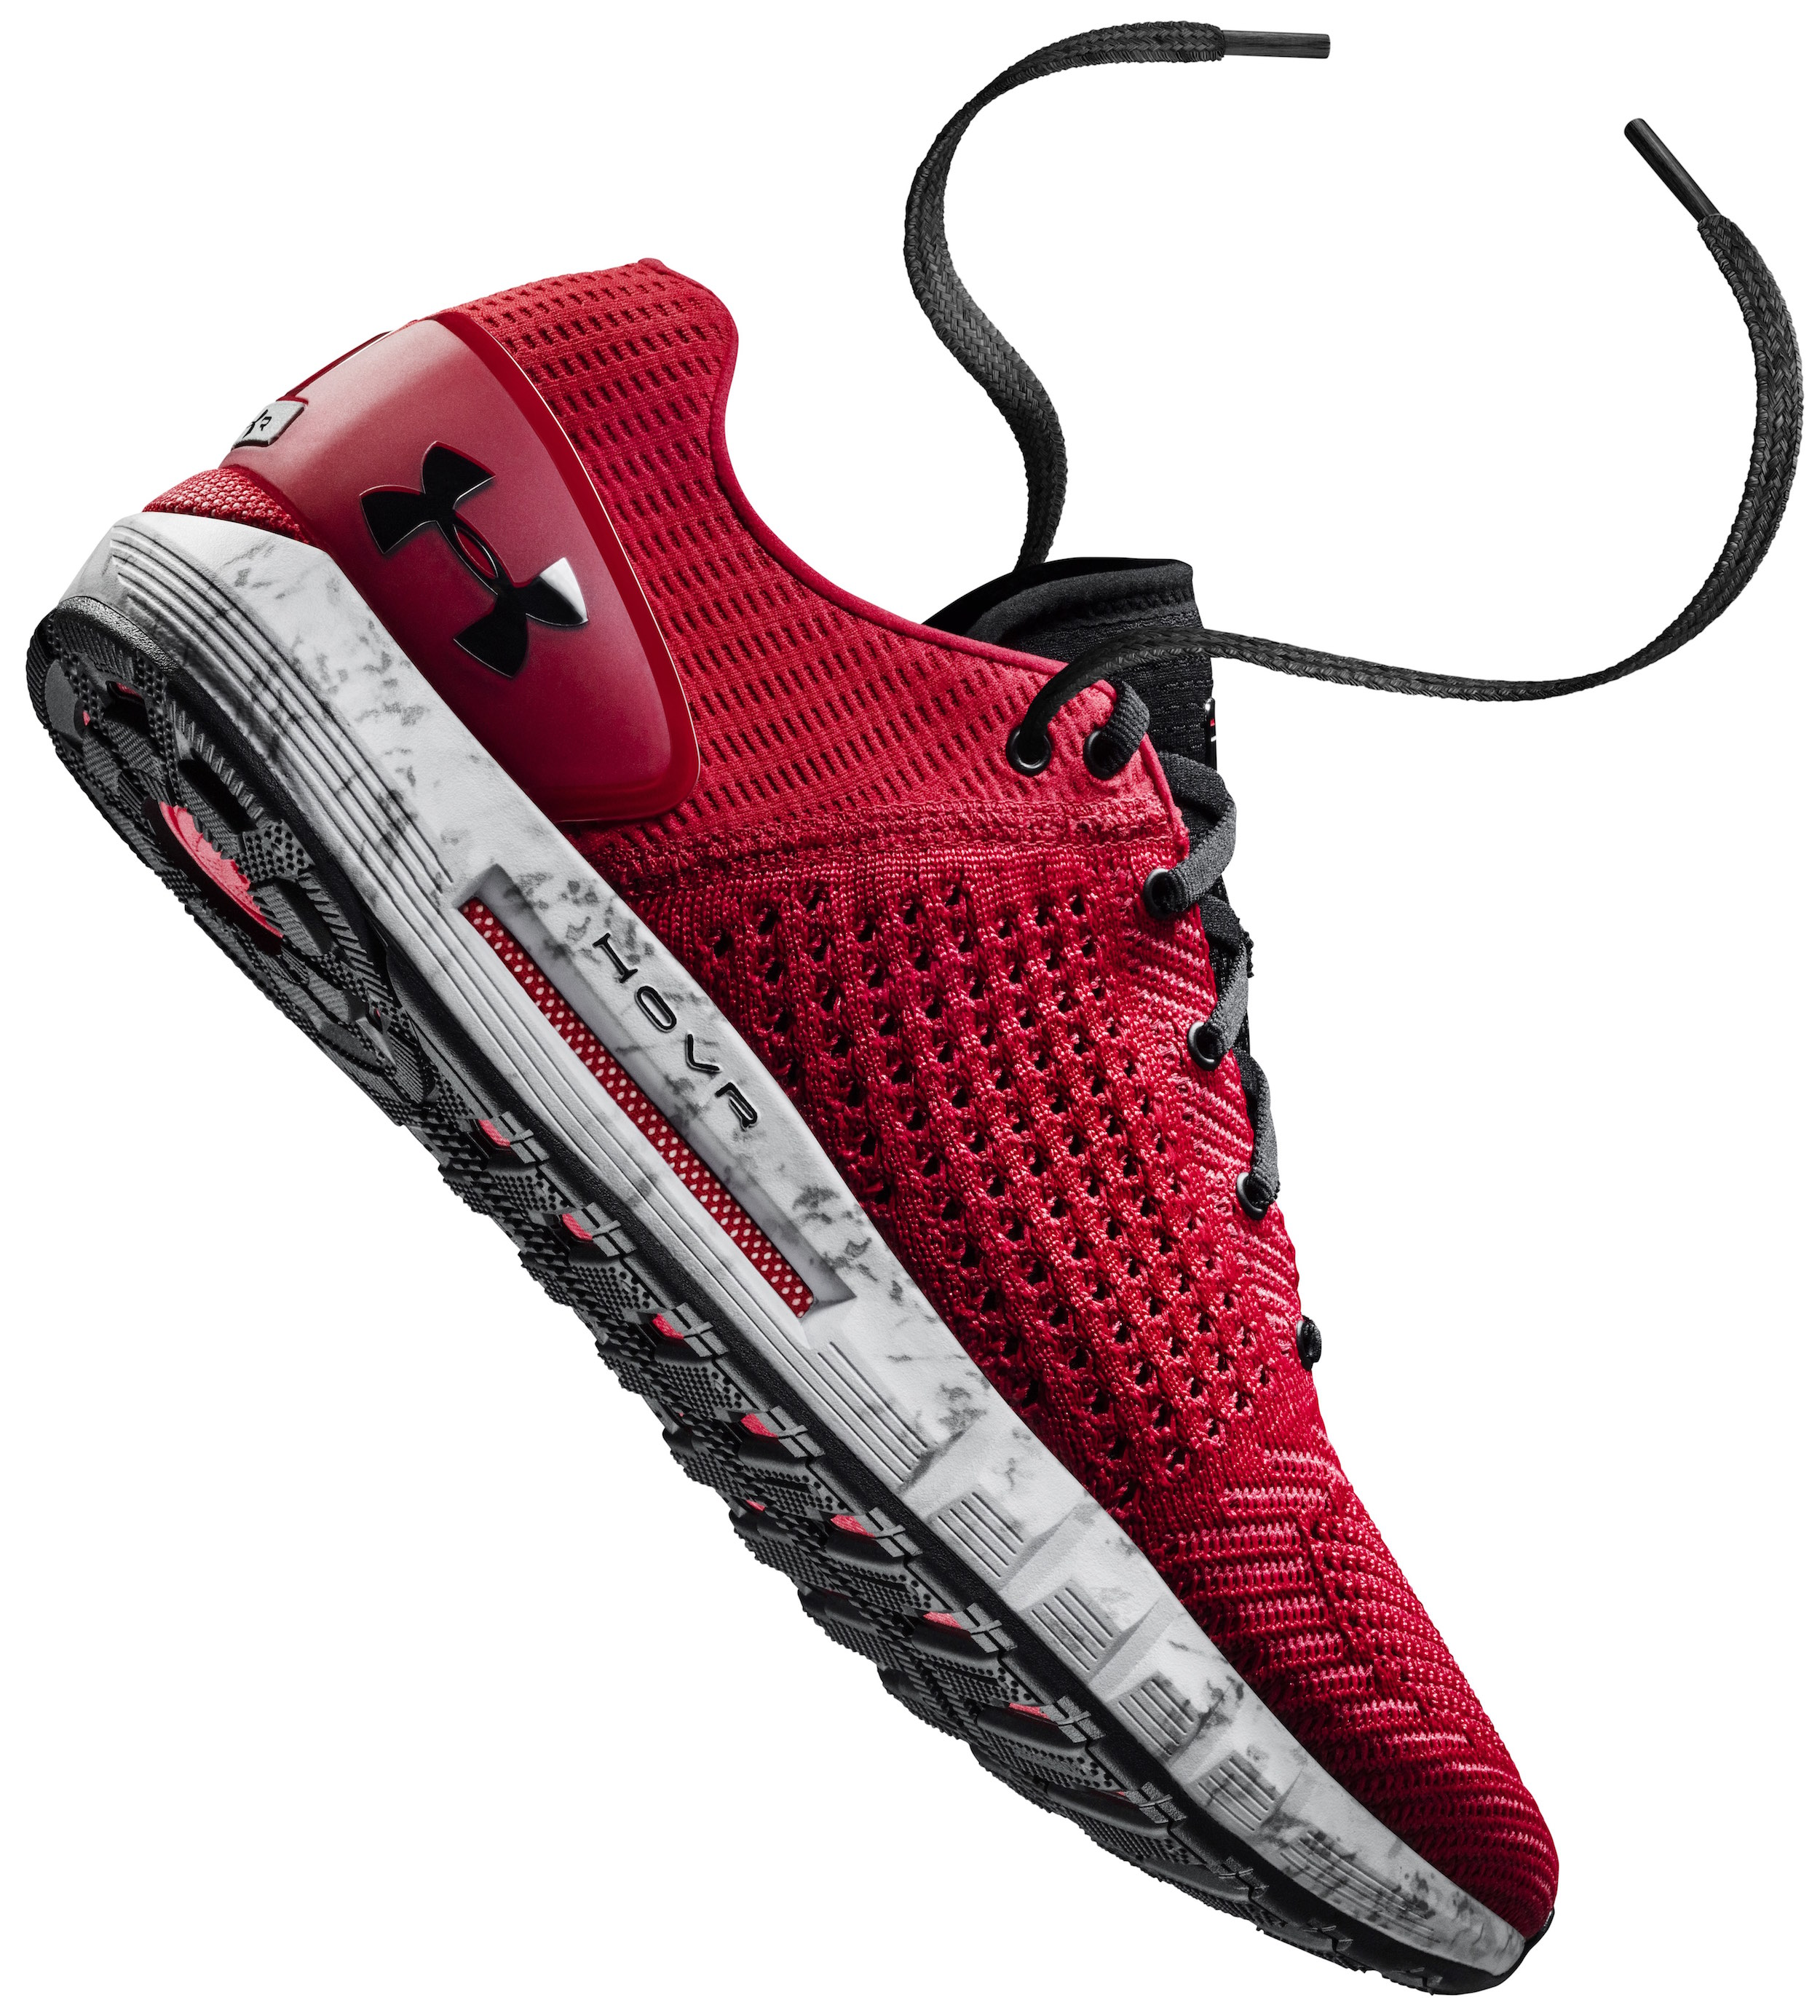 wholesale dealer f0d93 73231 Under Armour Unveils the HOVR Phantom and HOVR Sonic ...